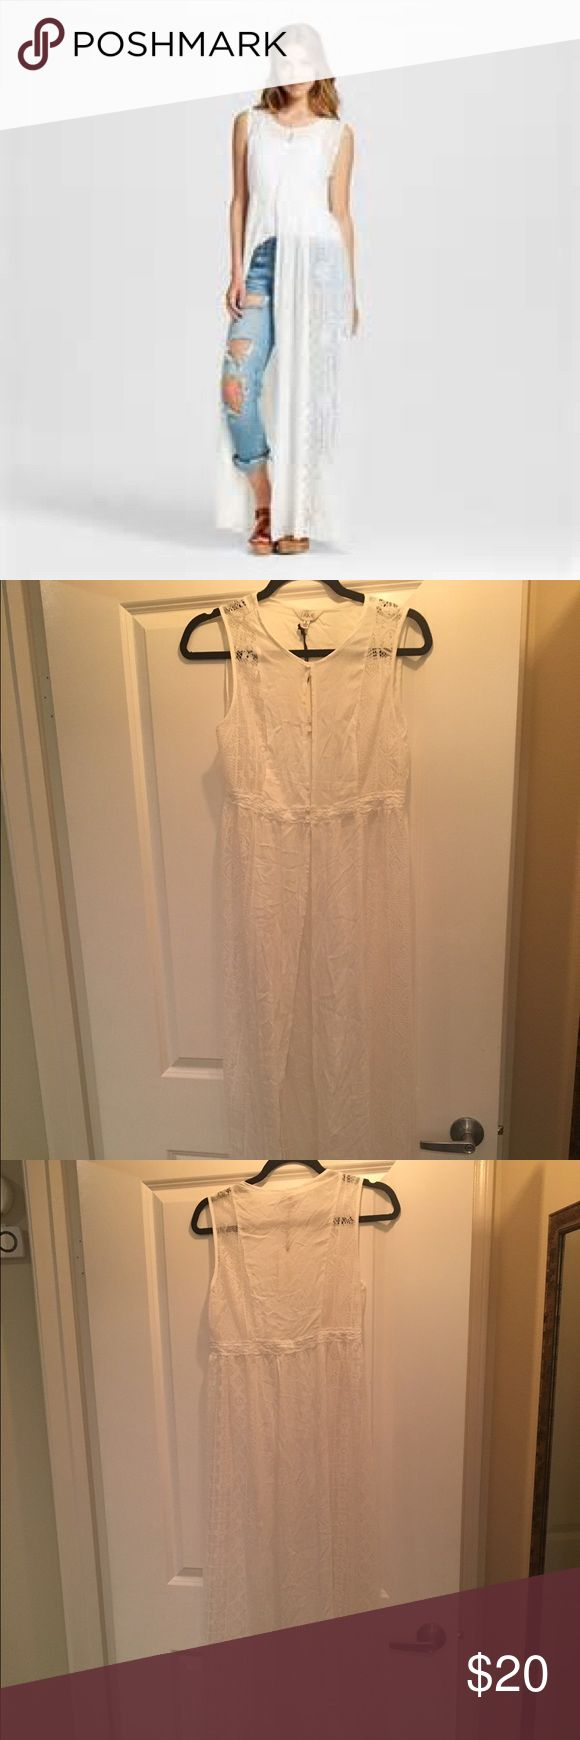 Juniors White Lace Sleeveless Duster Cardigan NWT! From target, J'Aime brand sleeveless Lace cardigan duster, sz s. Never worn! make me an offer! j'aime Tops